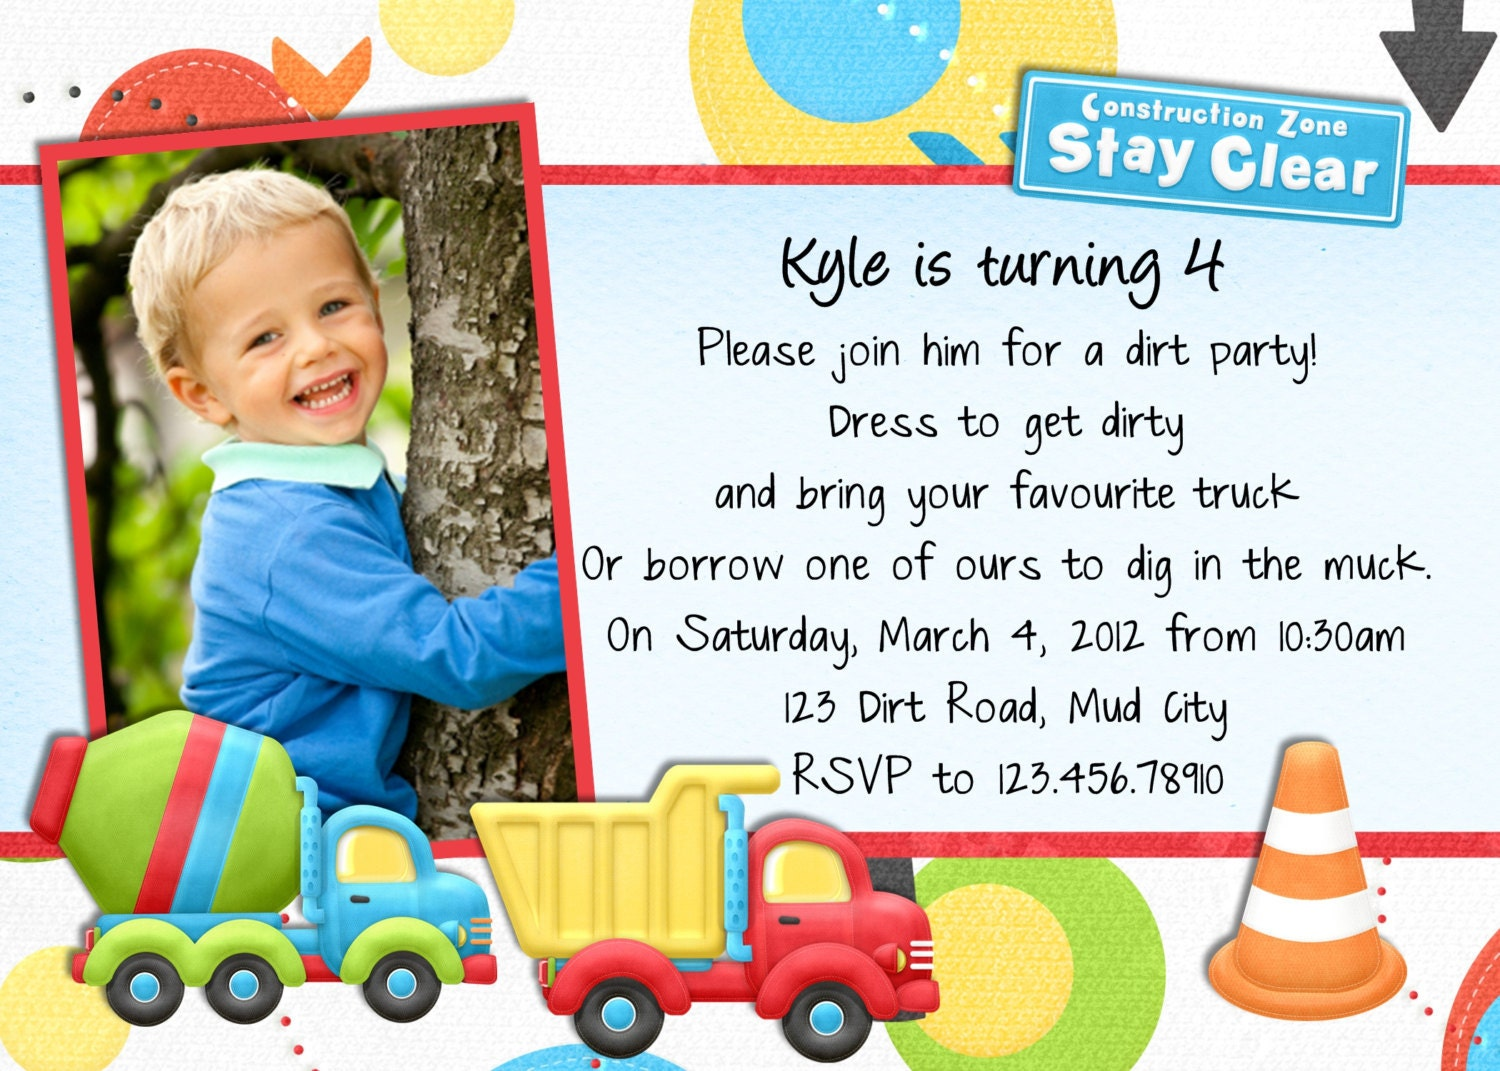 Truck Birthday Invitations is one of our best ideas you might choose for invitation design